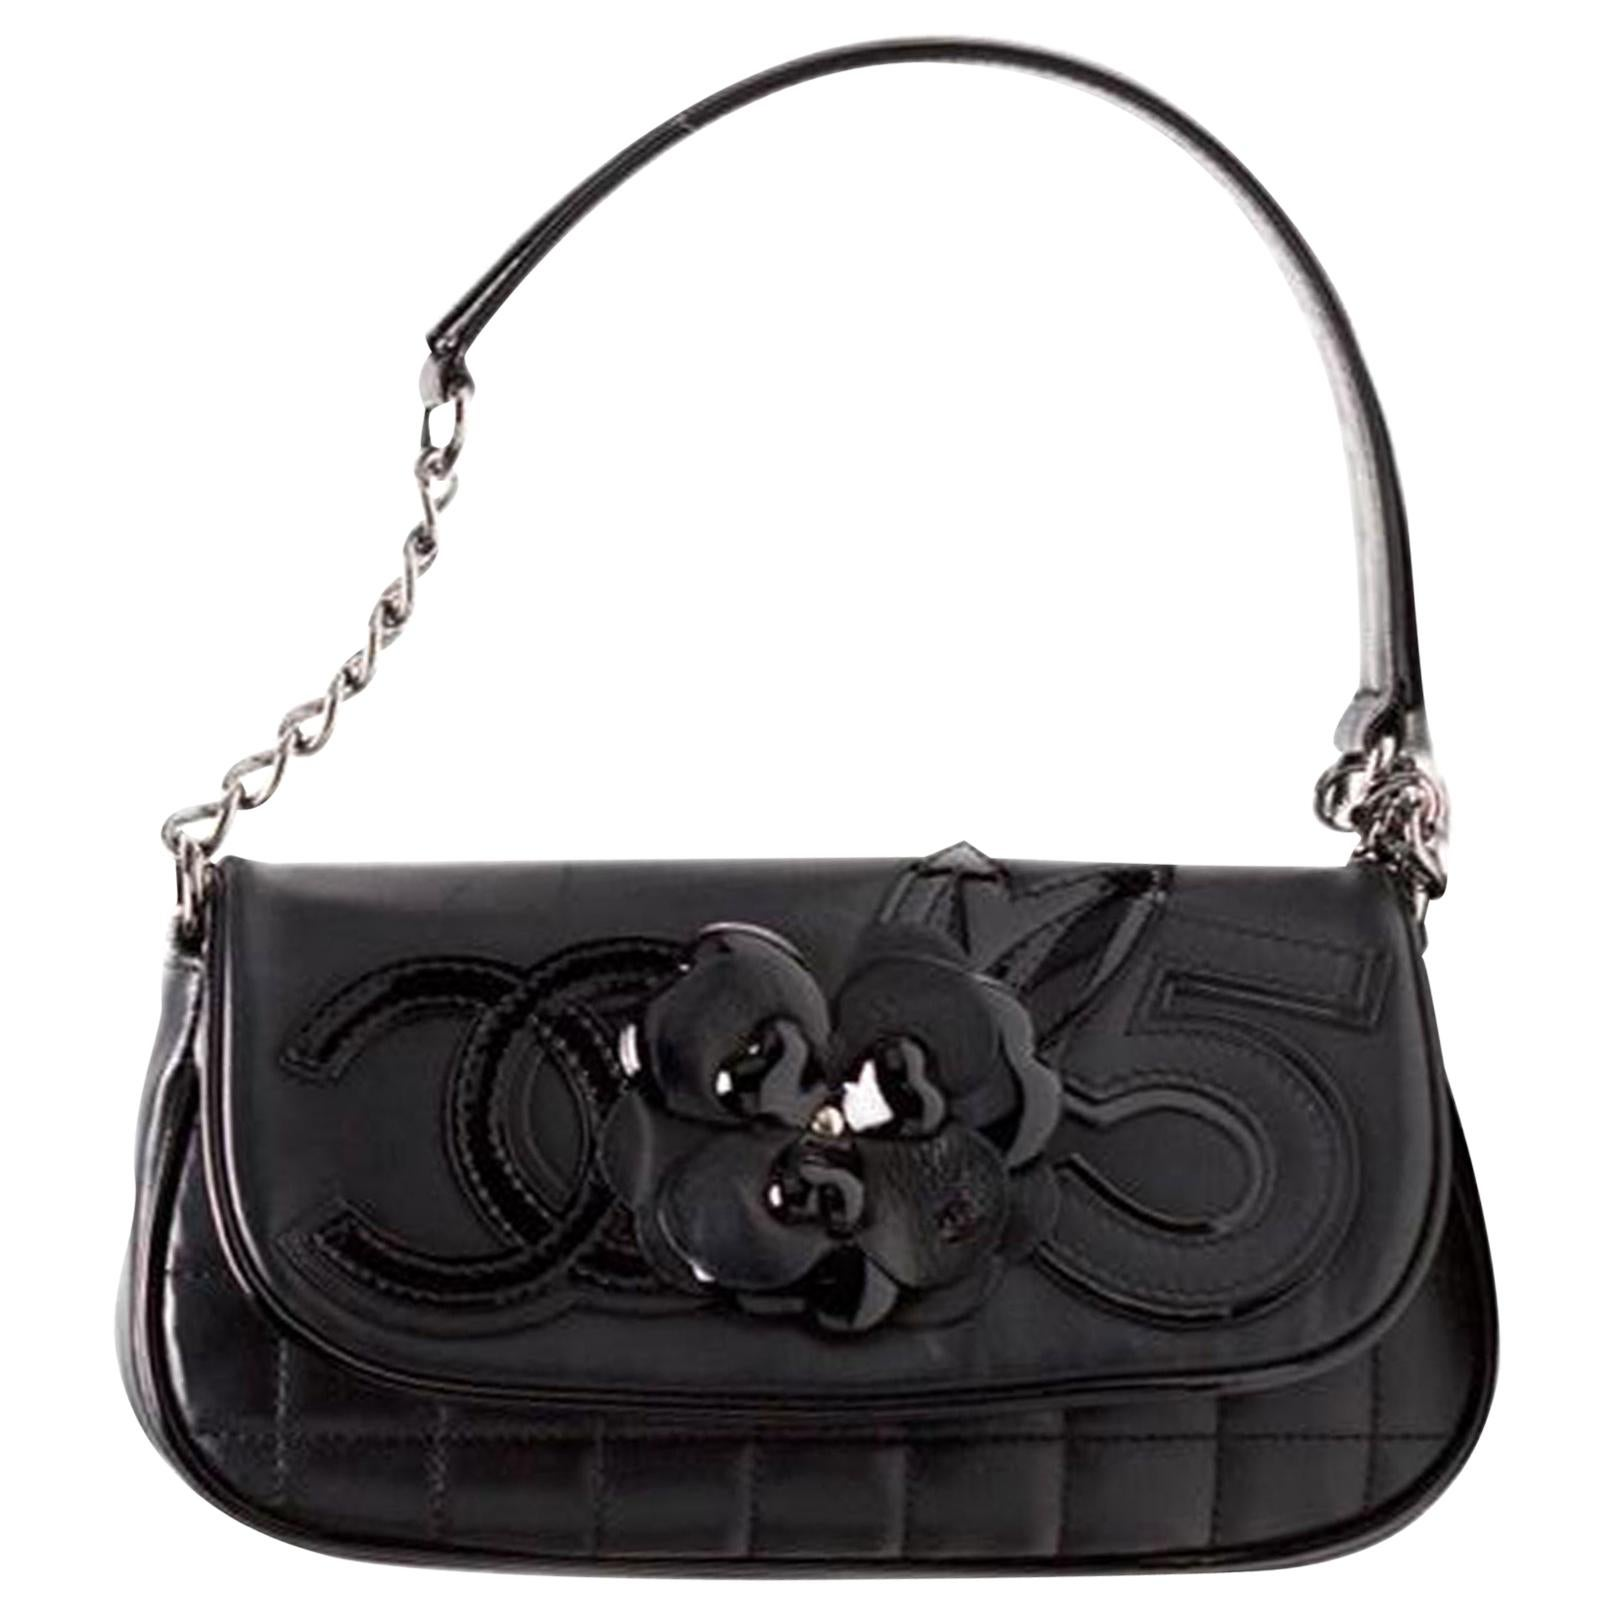 Chanel Cambon Quilted Lambskin Camellia No. 5 Flap Black Leather Shoulder Bag